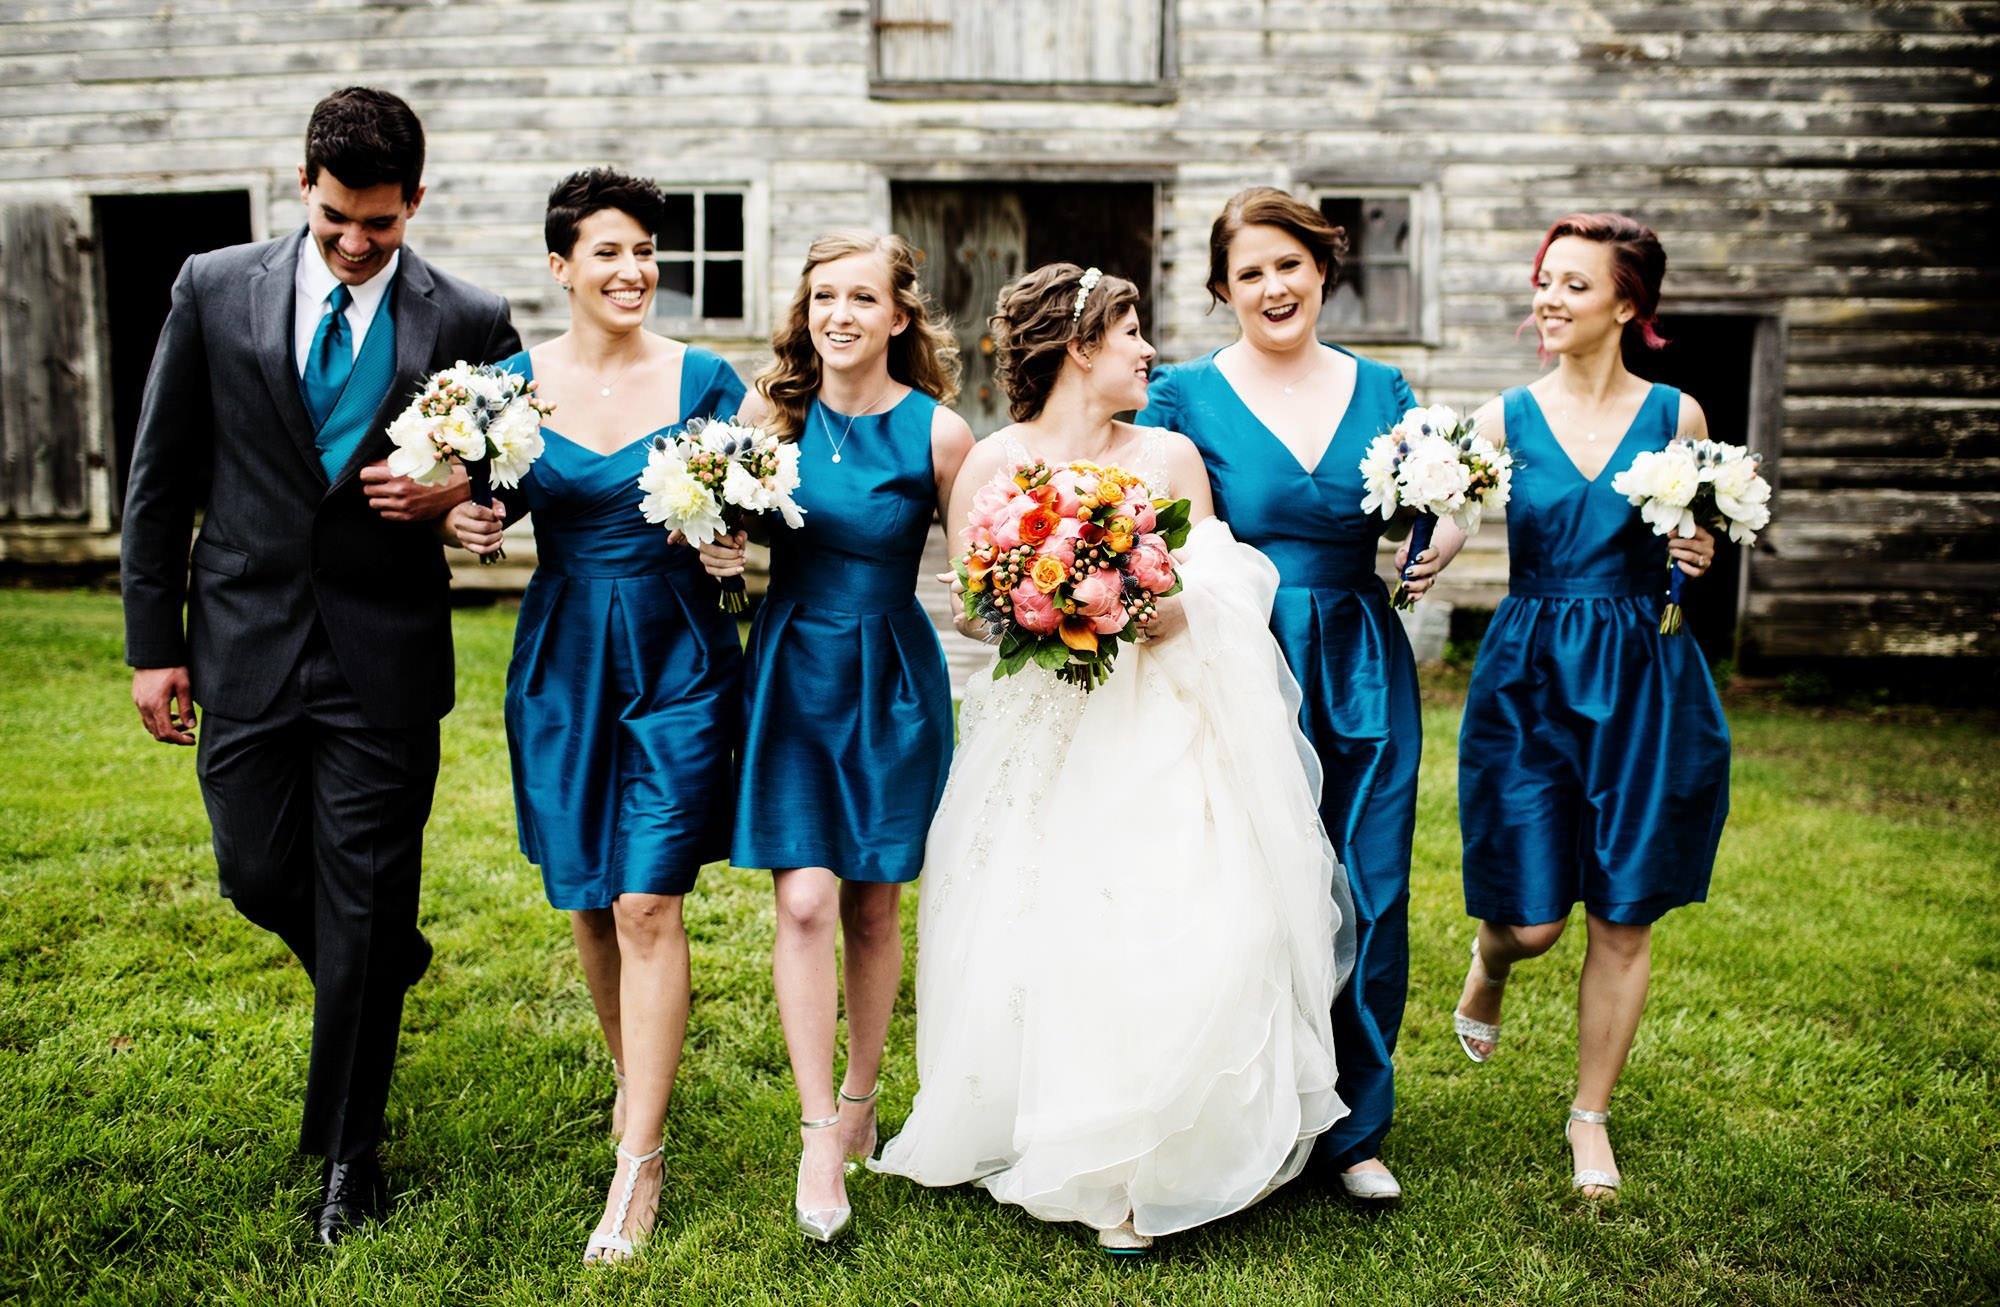 Bridal party portrait outside the barn on the venue grounds.